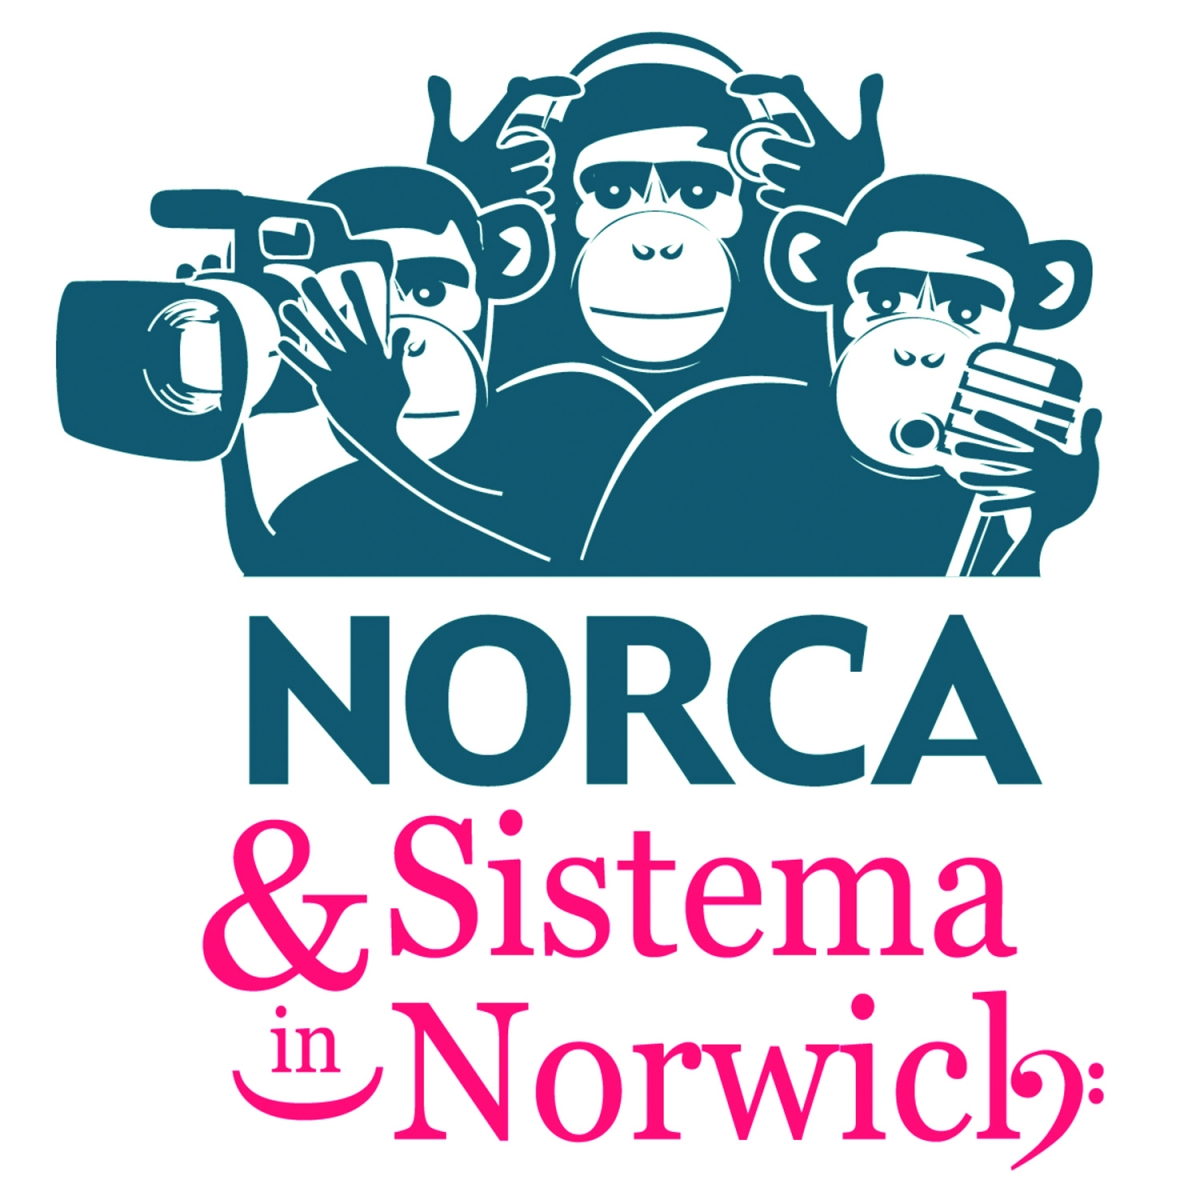 NORCA and Sistema in norwich eCards